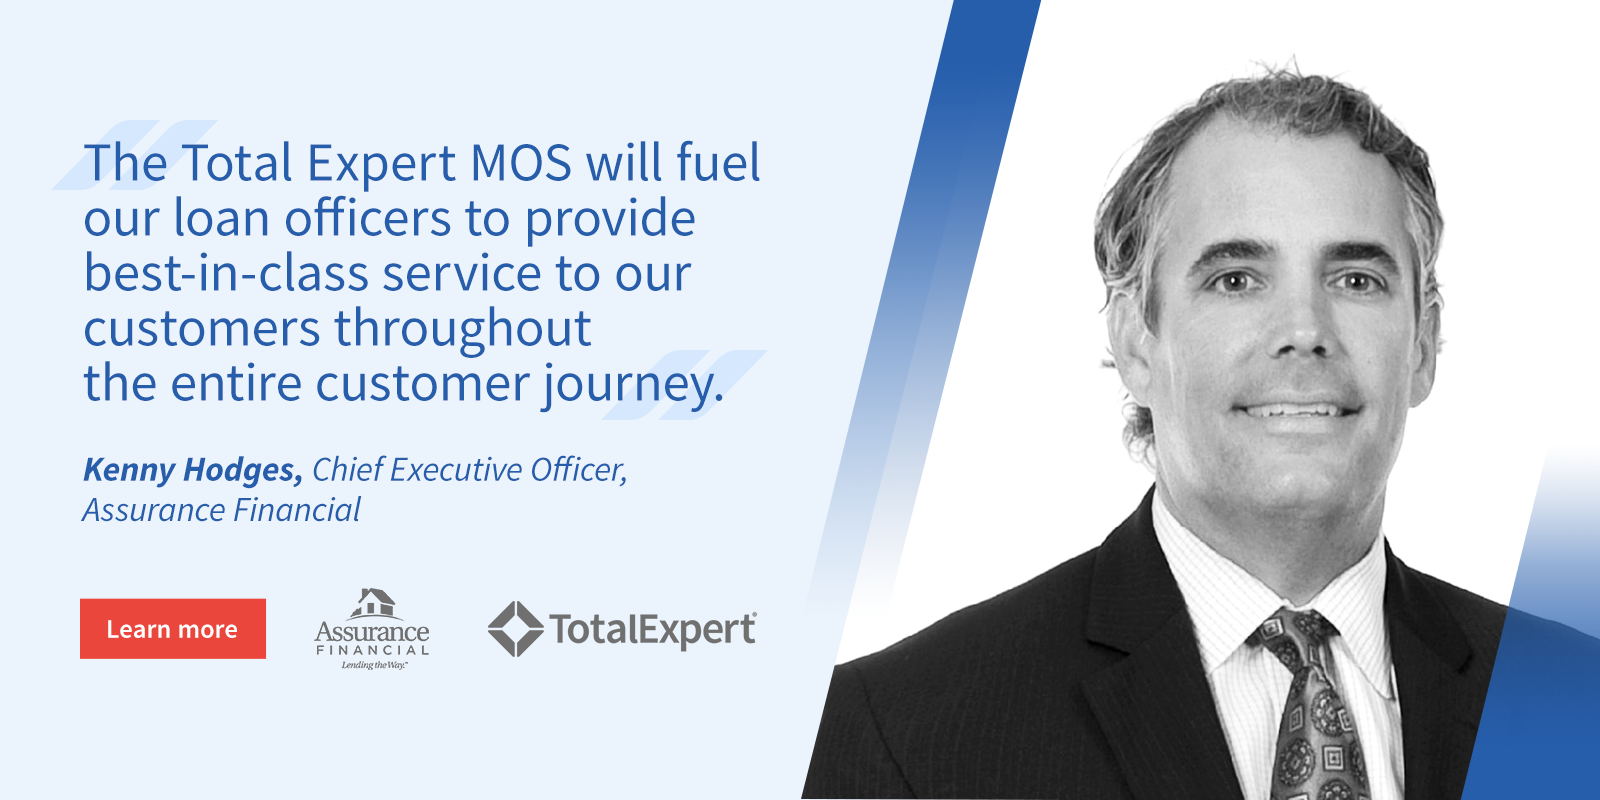 """The Total Expert MOS will fuel our loan officers to provide best-in-class service to our customers throughout the entire customer journey."" Kenny Hodges, Chief Executive Officer, Assurance Financial"